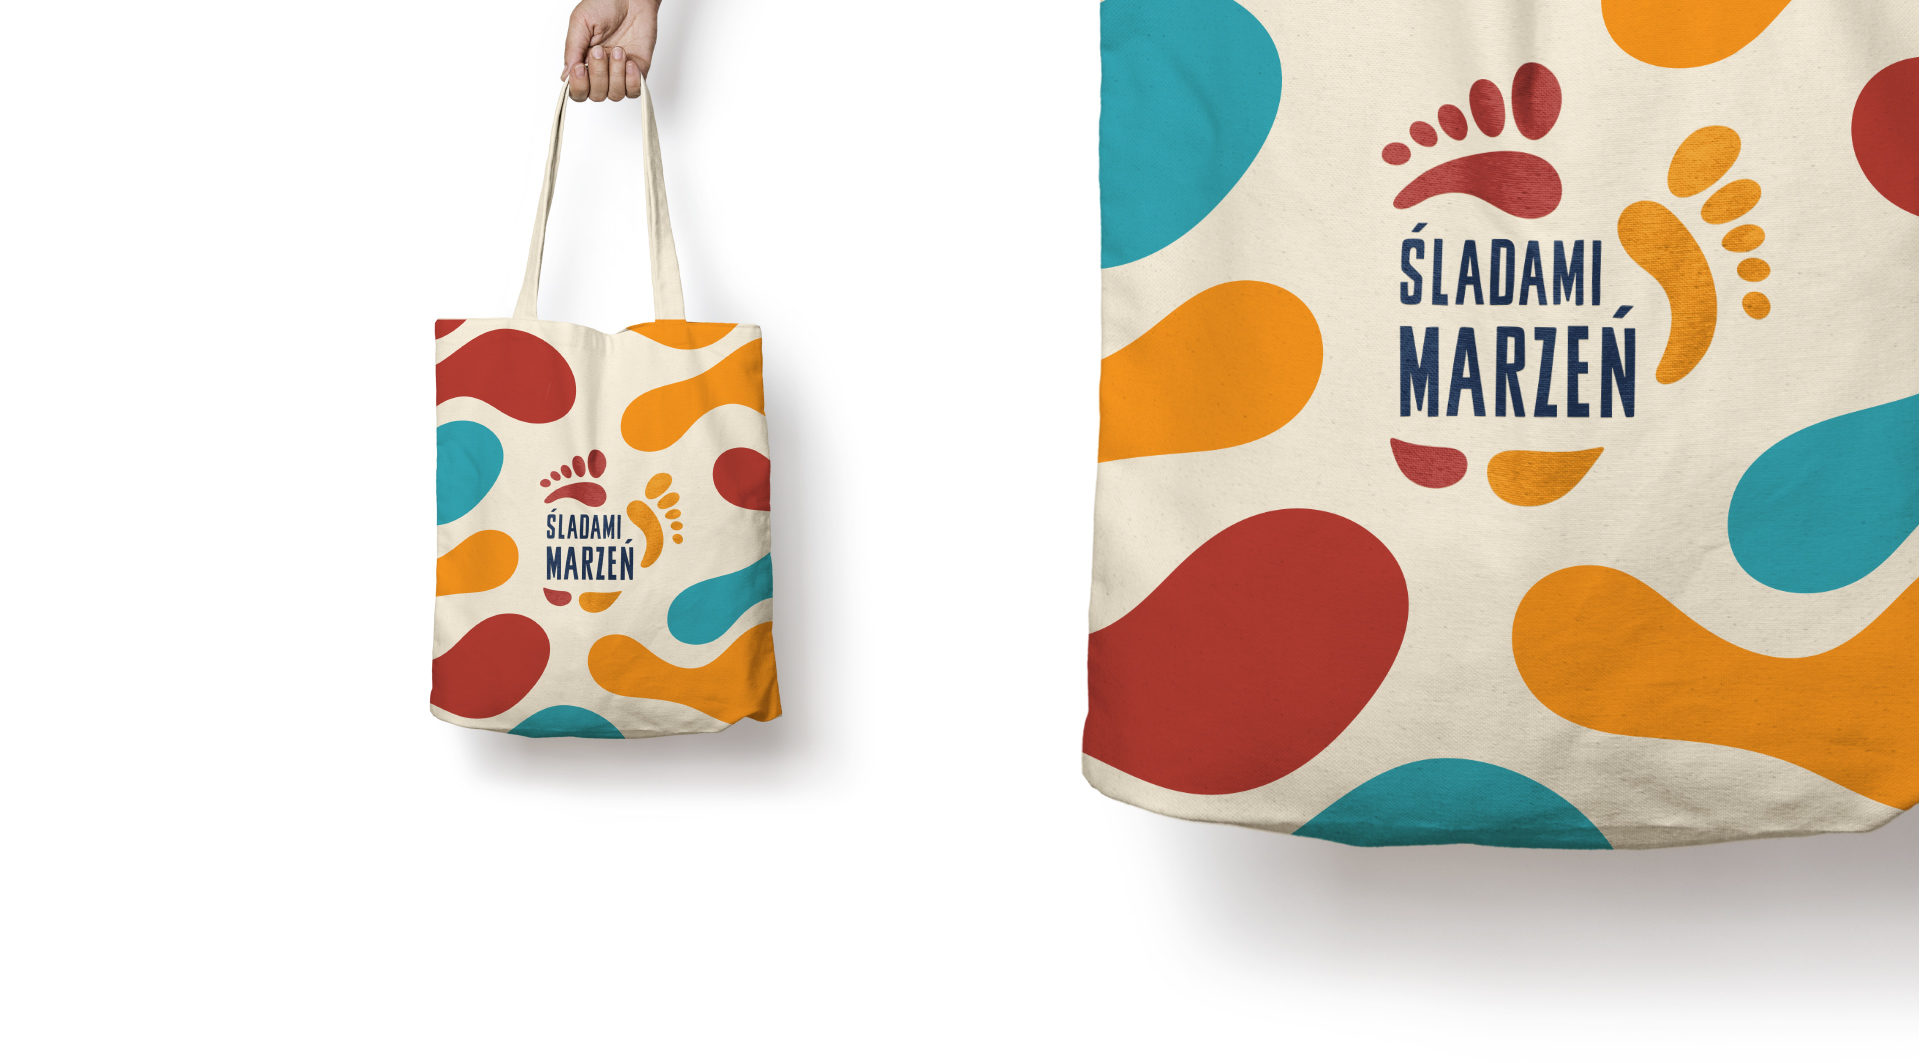 Material bag with logo of Festival Sladami Marzen